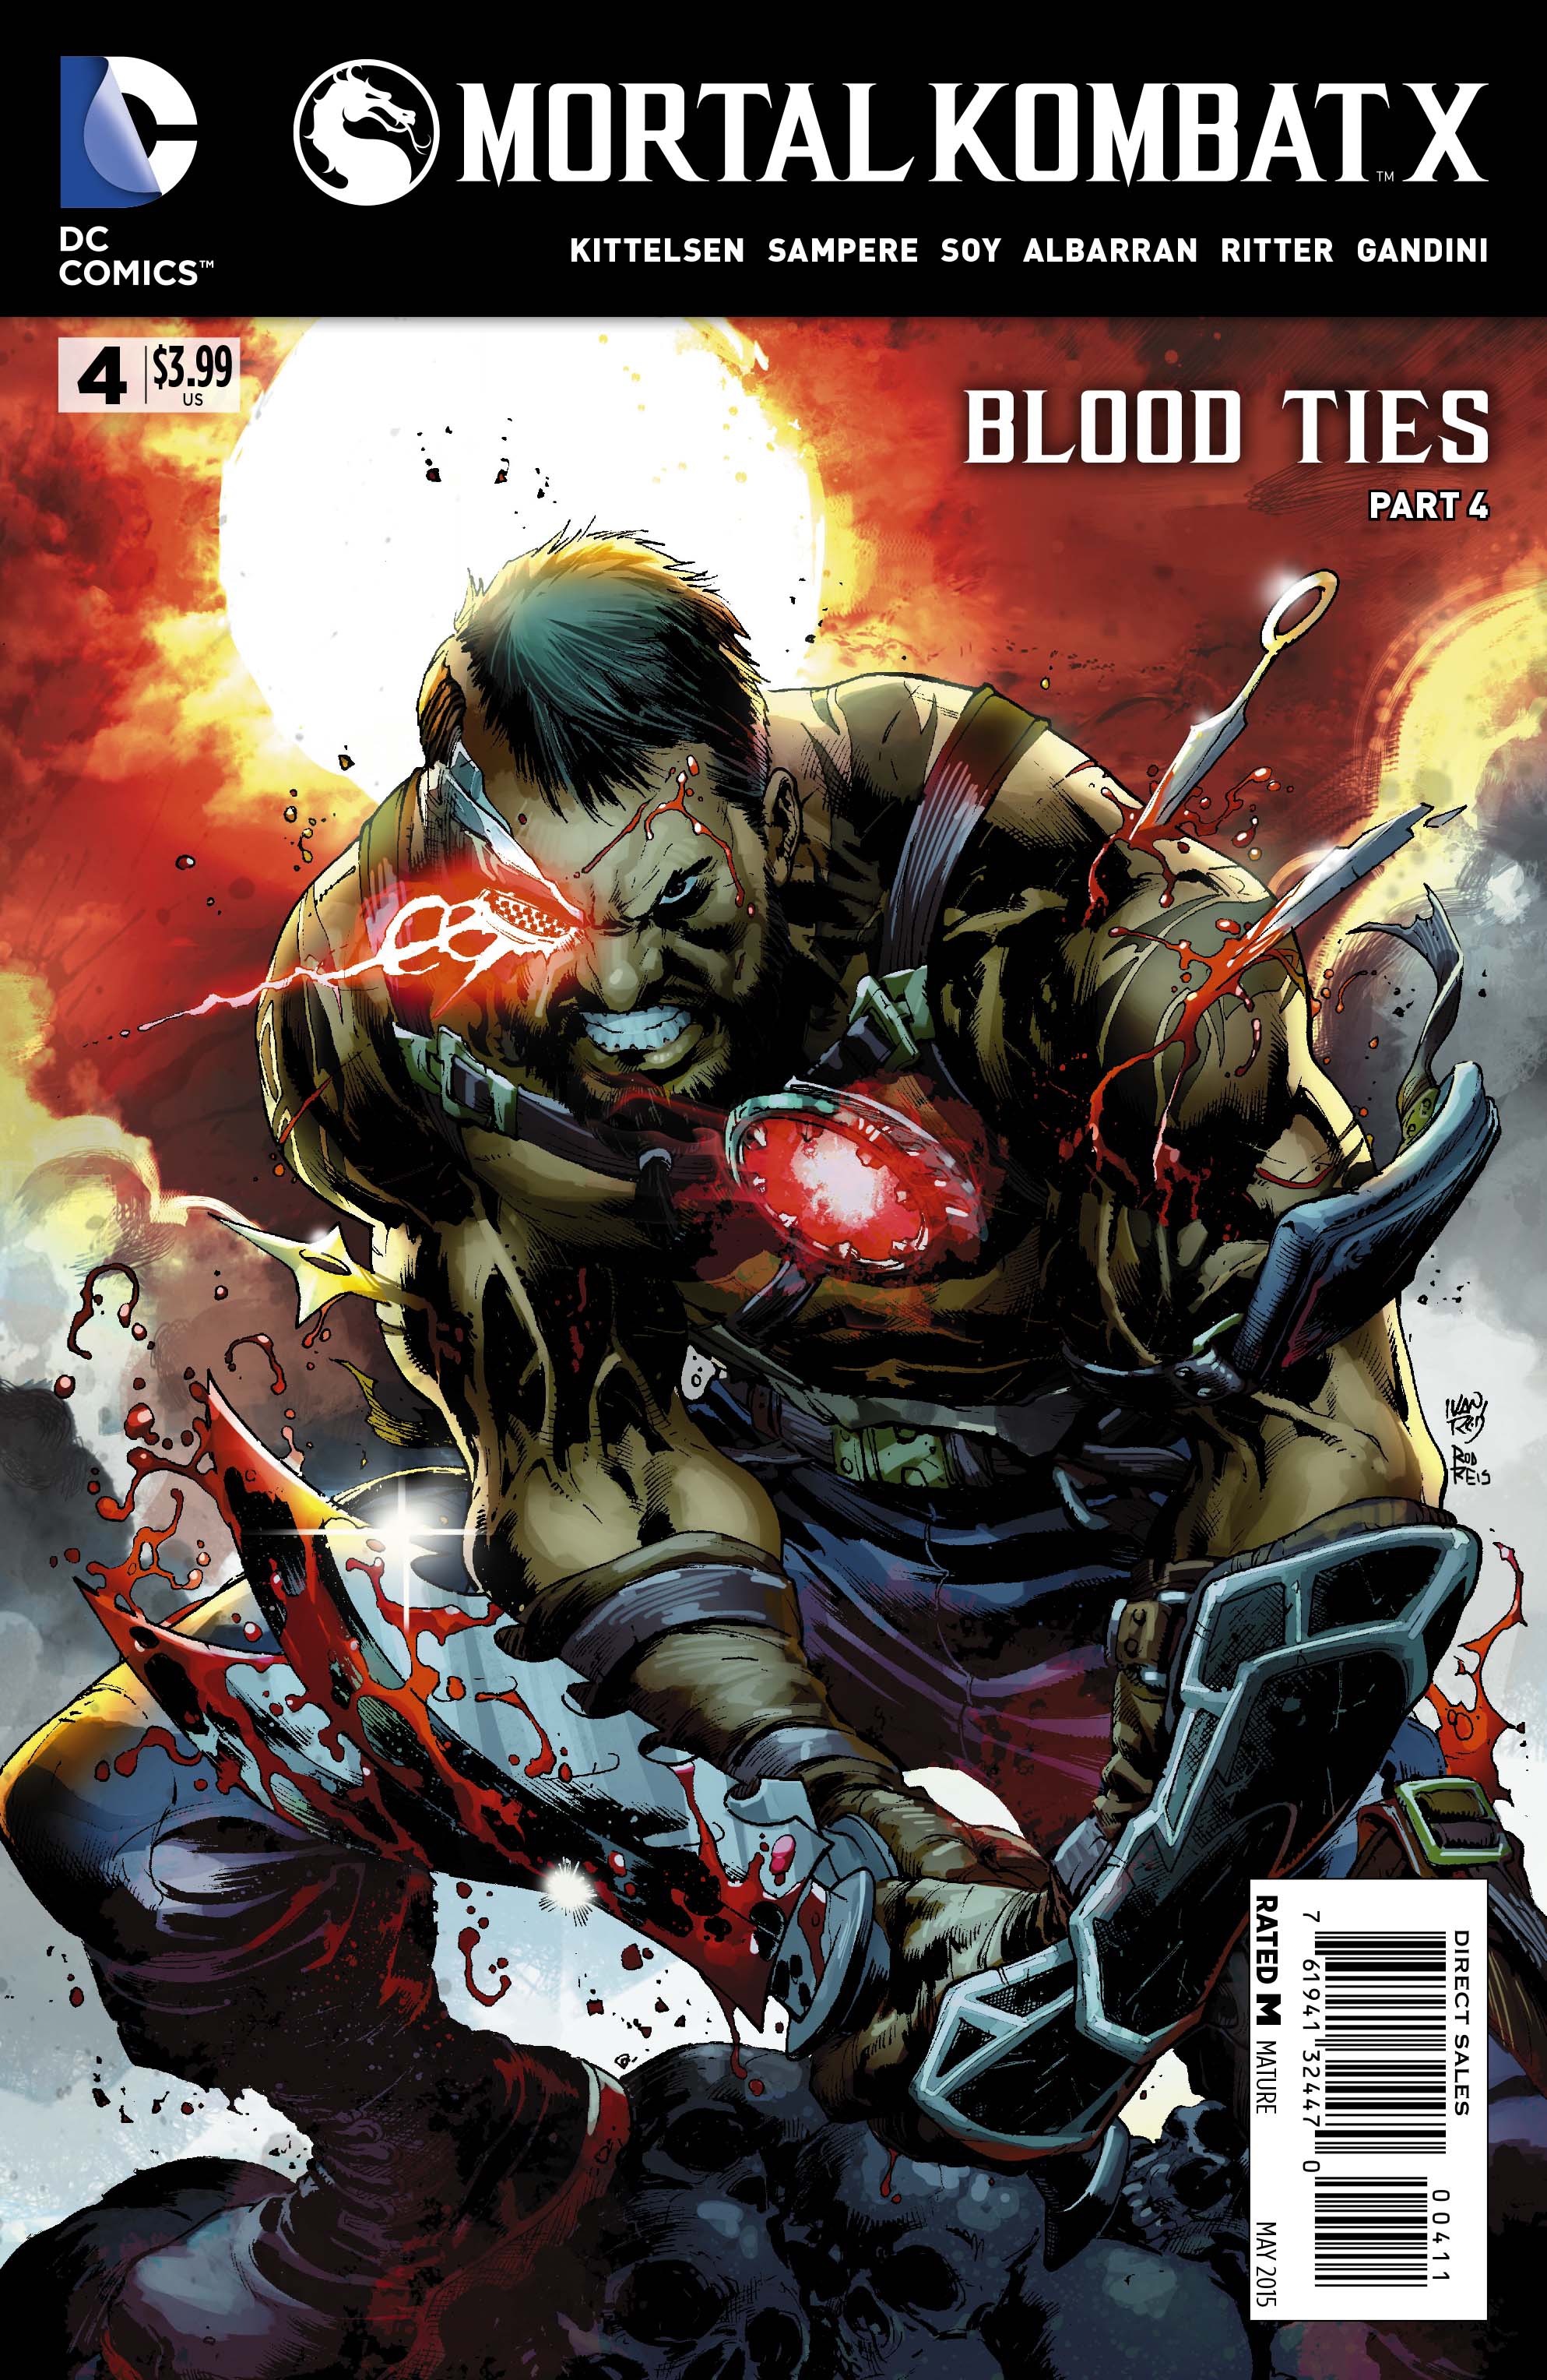 MORTAL KOMBAT X #4 (MR)